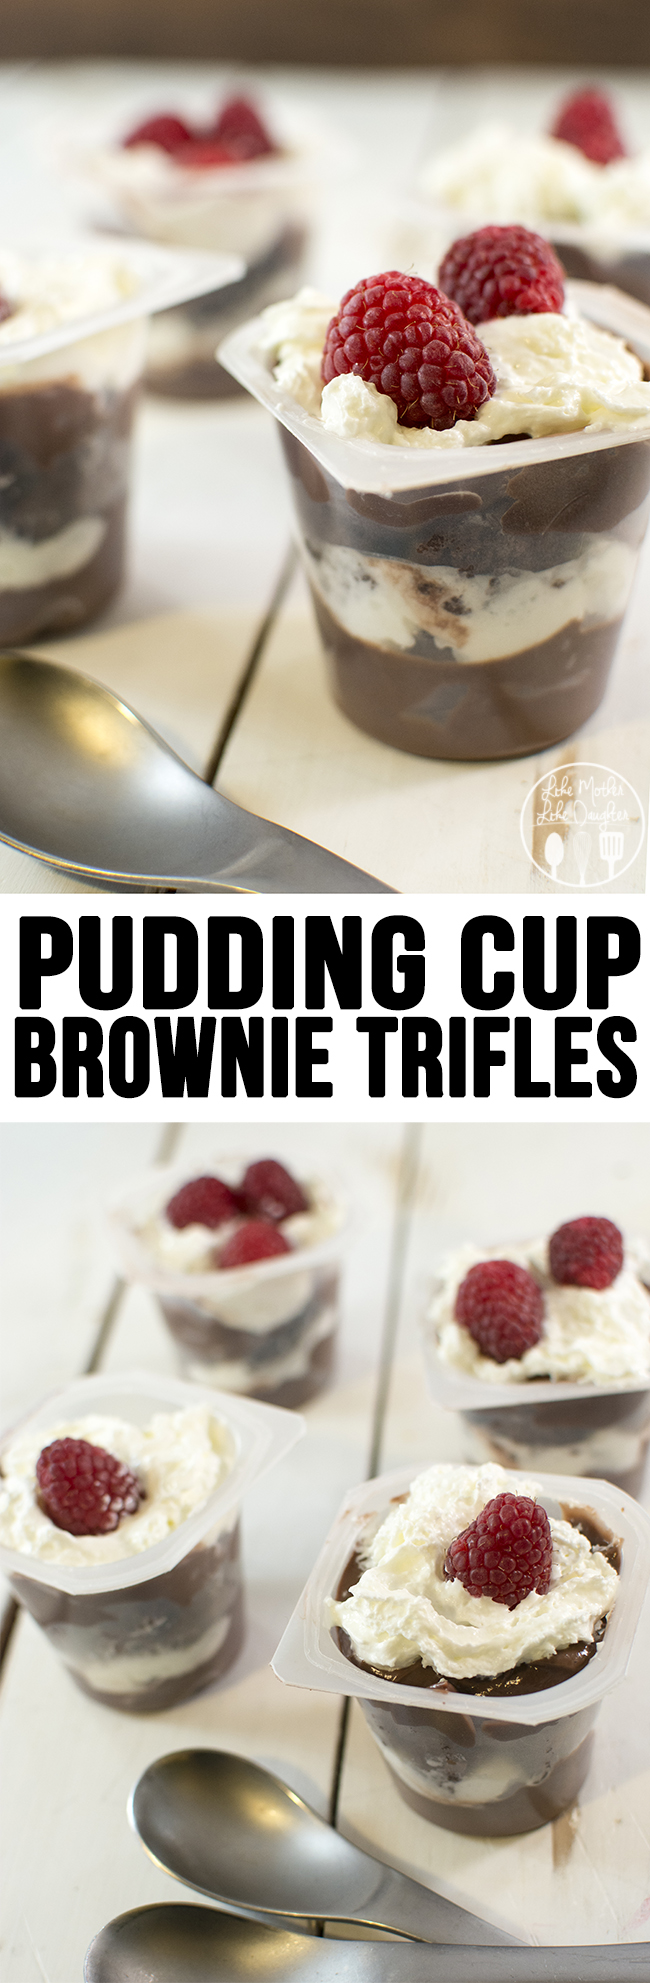 Pudding Cup Brownie Trifles - These simple and delicious pudding cup brownie trifles are a perfect elegant chocolate dessert.